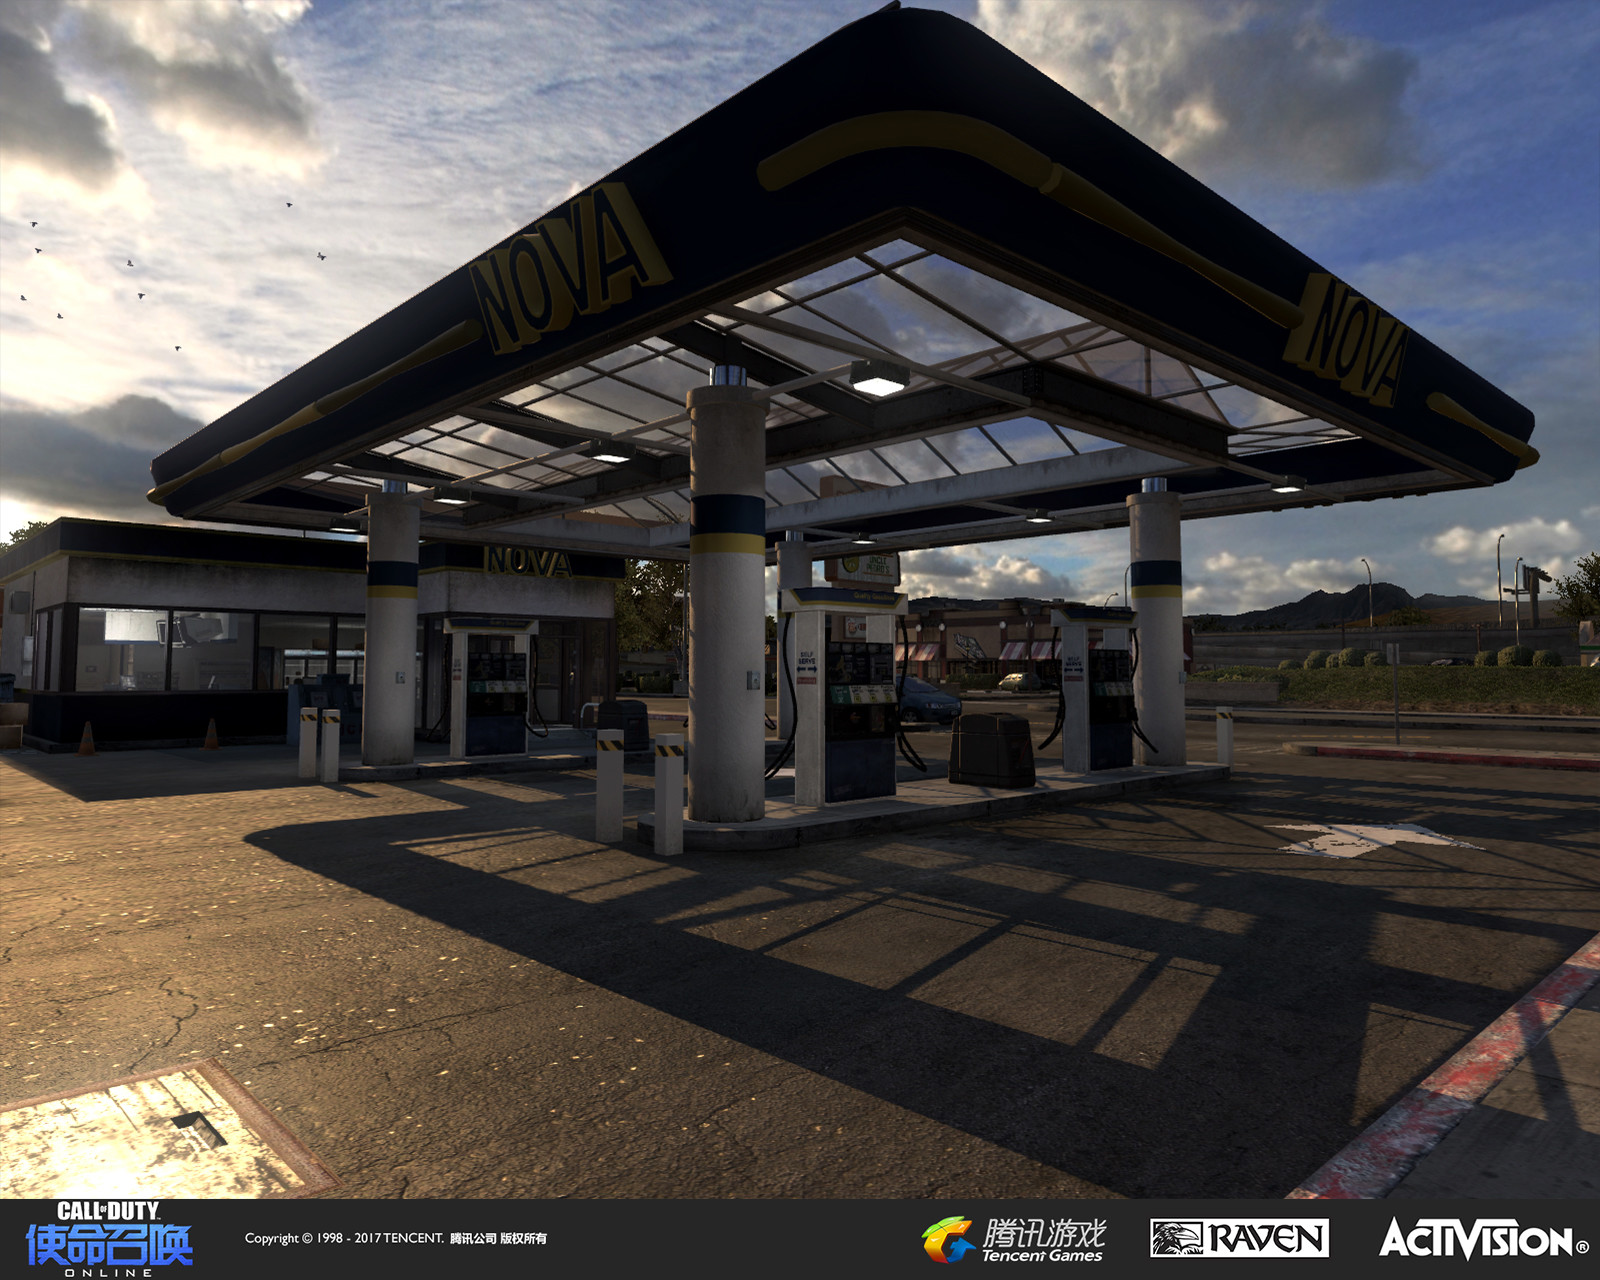 This gas station was rebuilt from a version originally appearing in Modern Warfare 3. I re-styled some of the design and added glass window tops which players to easily shoot through it in the Chopper Gunship game mode.